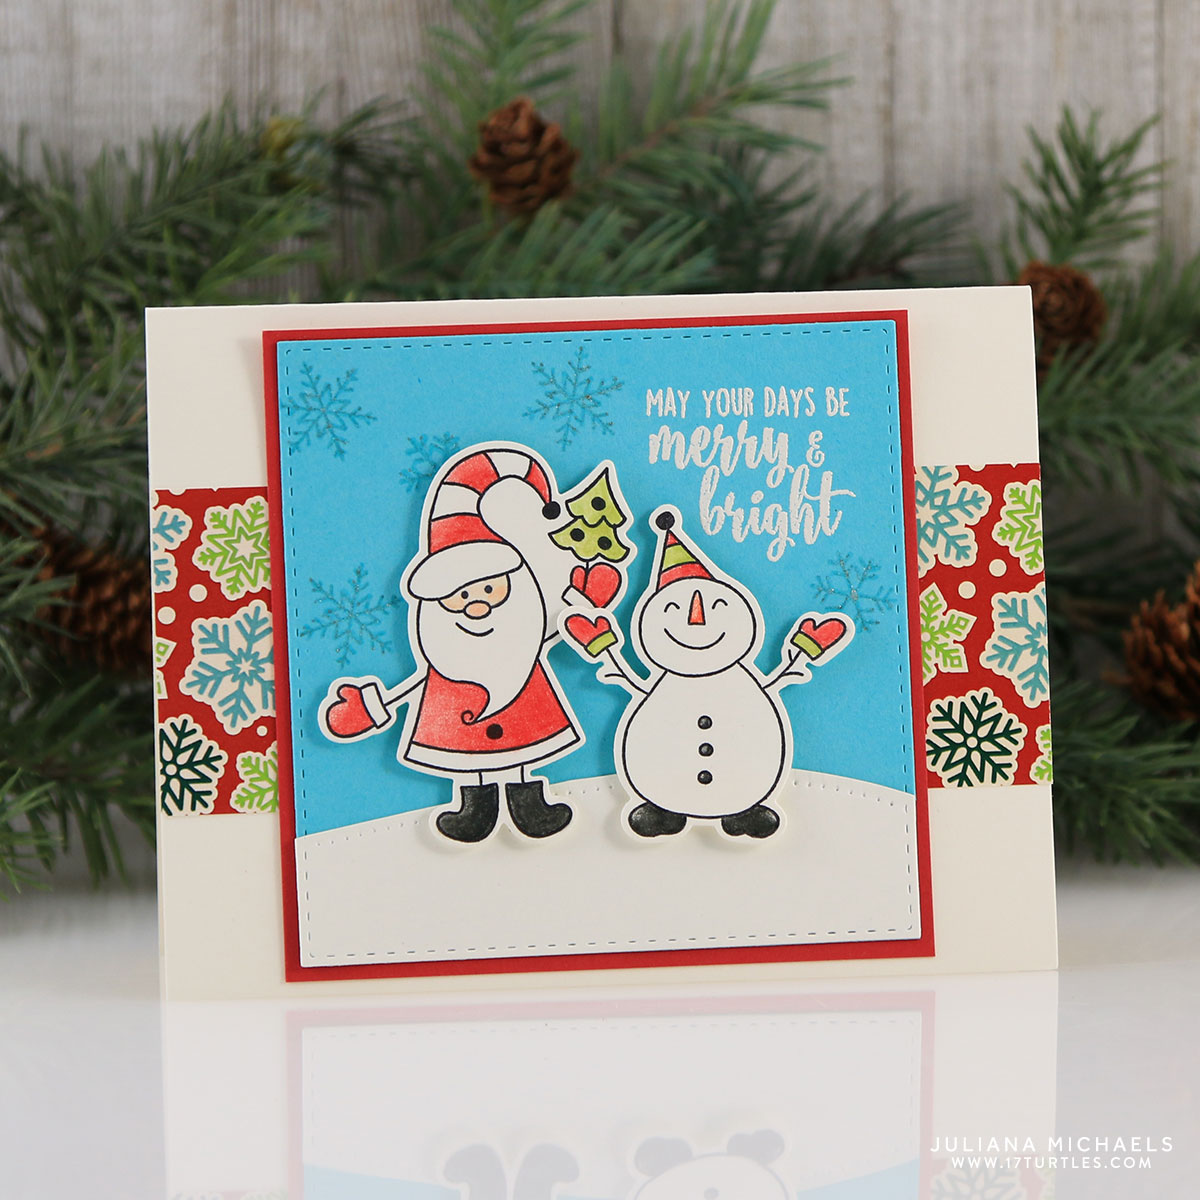 Gina k designs cardmaker blog hop christmas card ideas merry bright christmas card by juliana michaels featuring gina k designs home for the holidays stamptv m4hsunfo